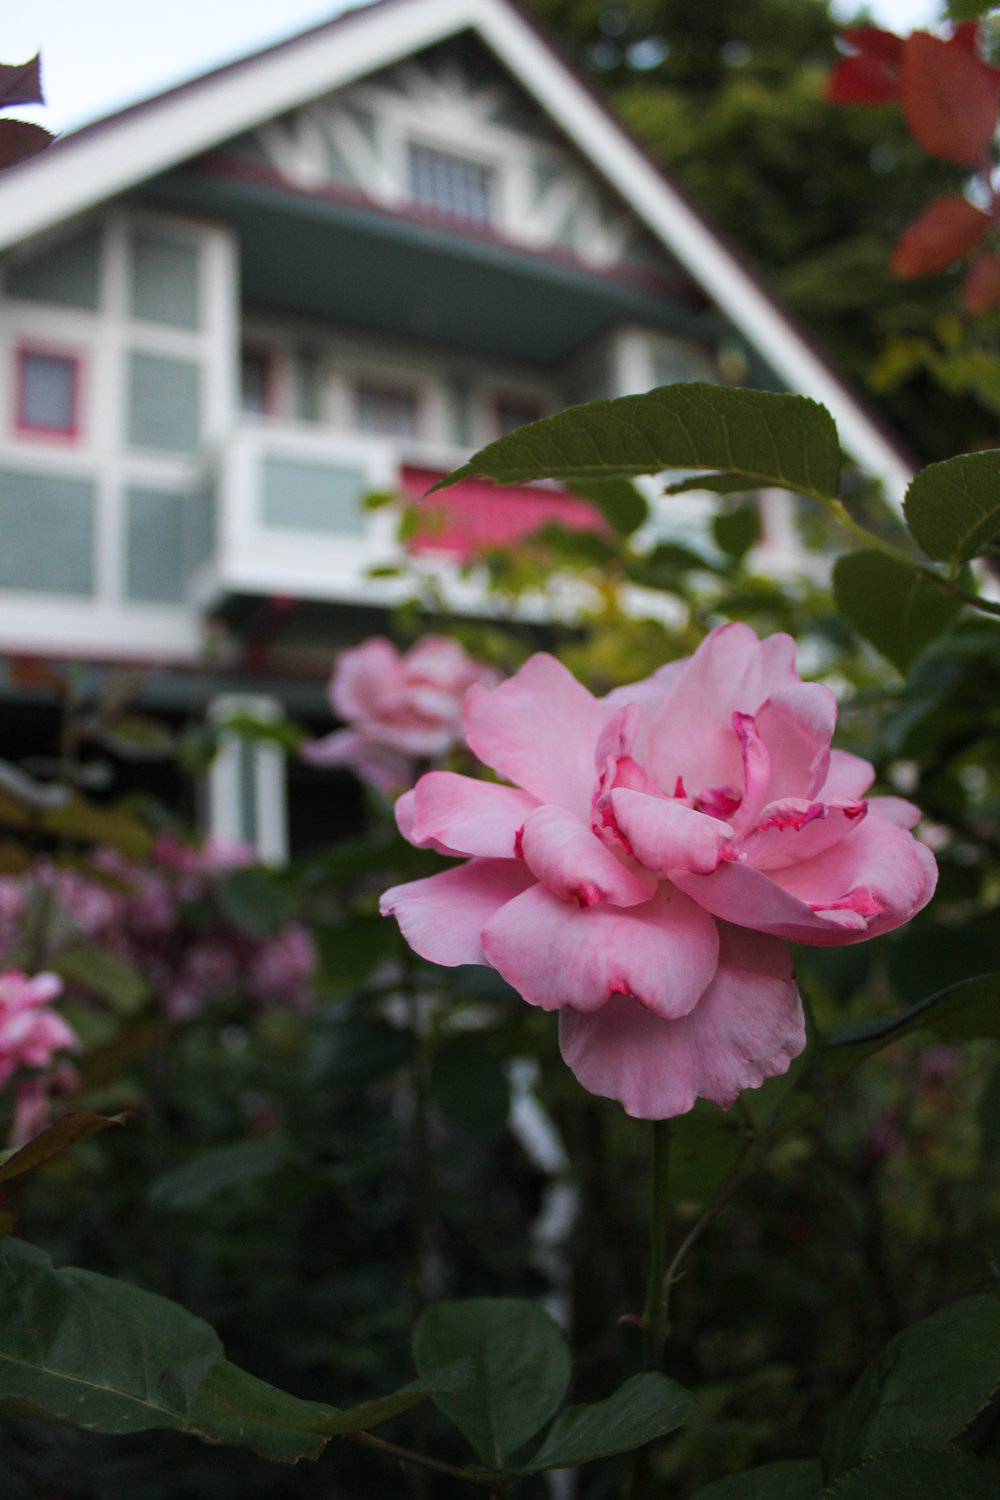 One of Steve's roses with his home in the background.